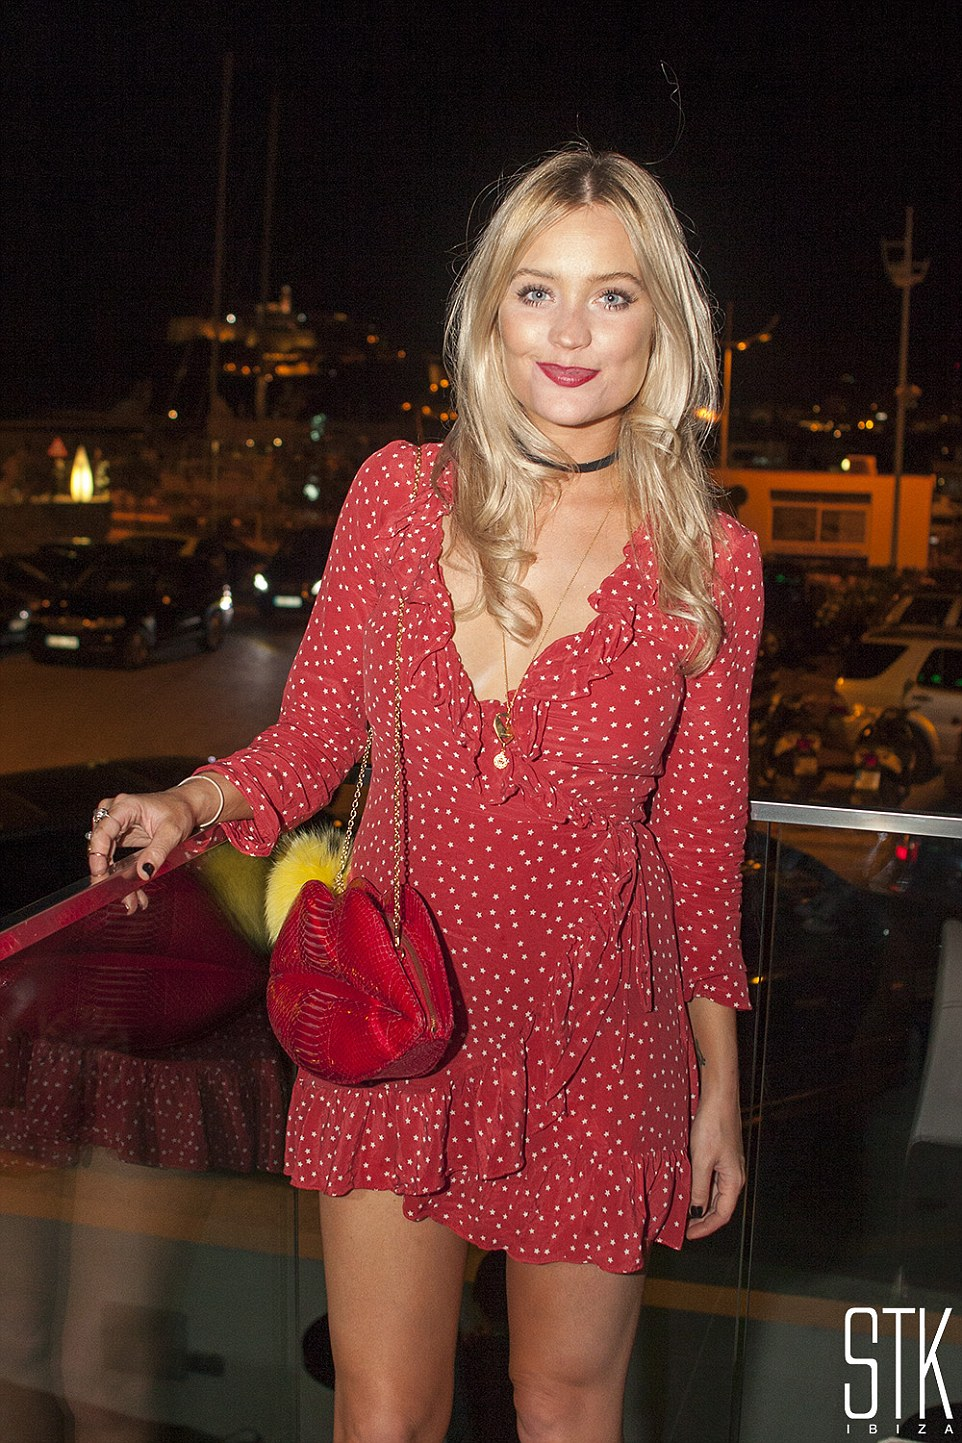 Dancing queen: Strictly Come Dancing contestant Laura Whitmore let her hair down on a night out at STK Ibiza earlier this summer before rehearsals for the BBC One show kicked off